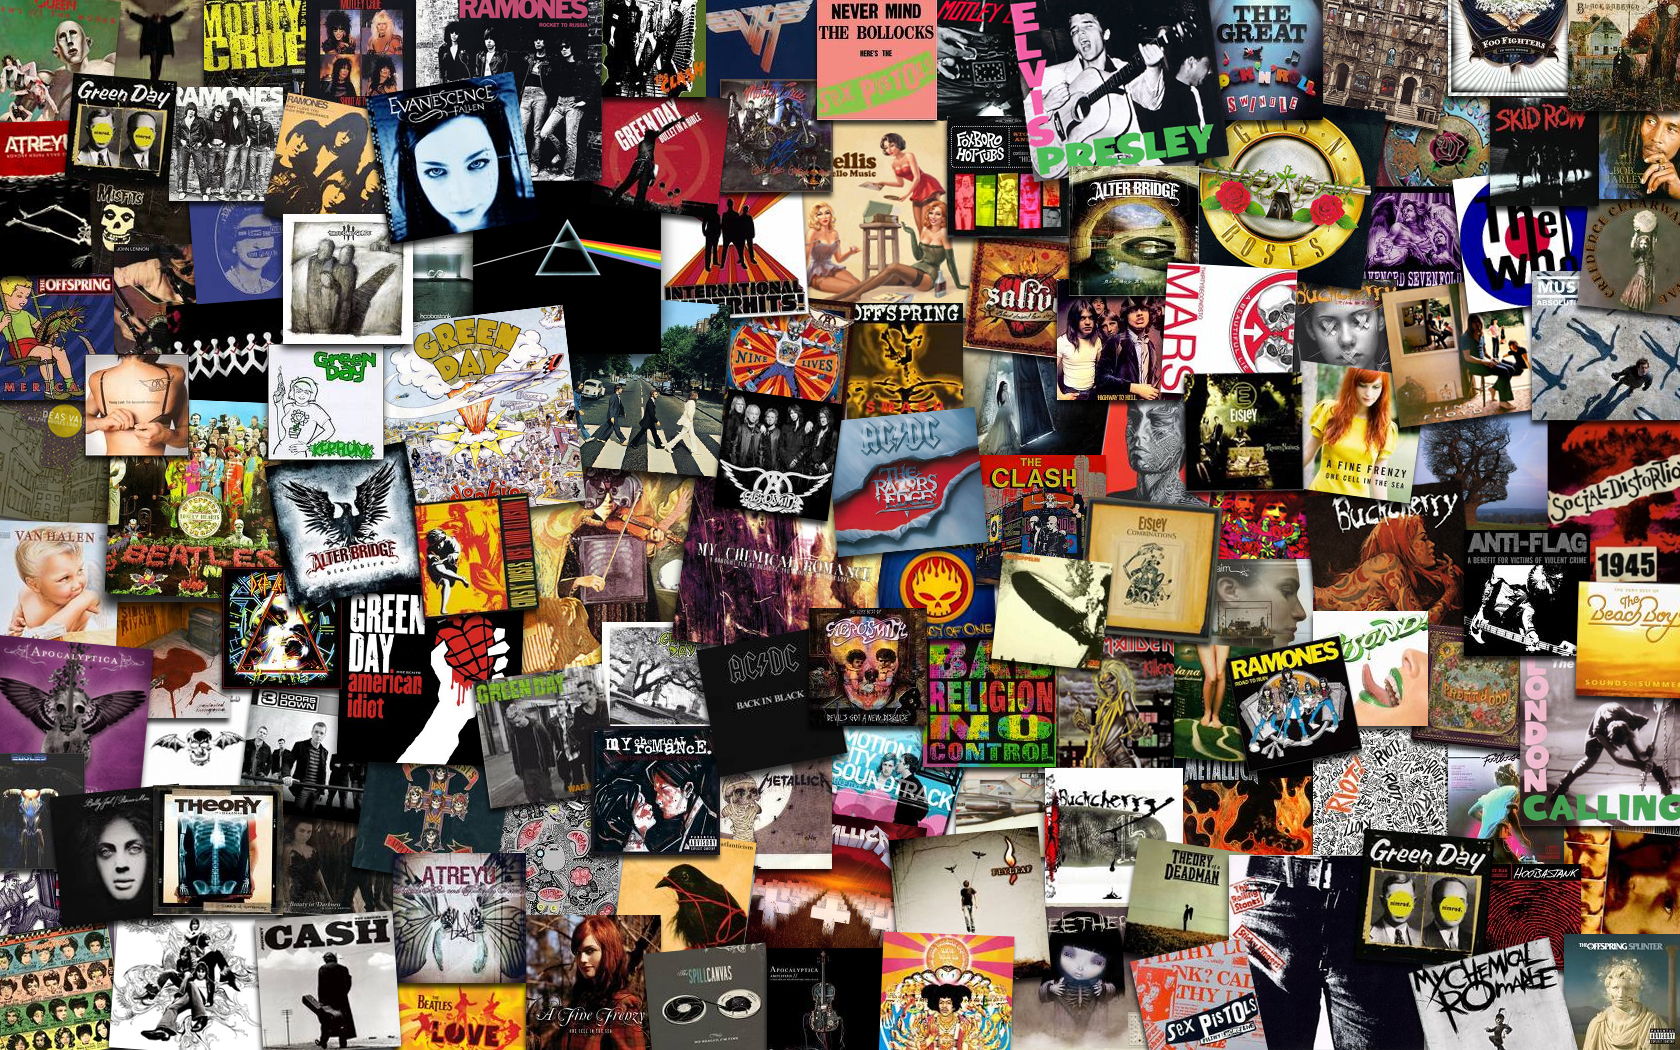 Music Front Cover Bands Album Covers Band Desktop 1680x1050 Wallpaper